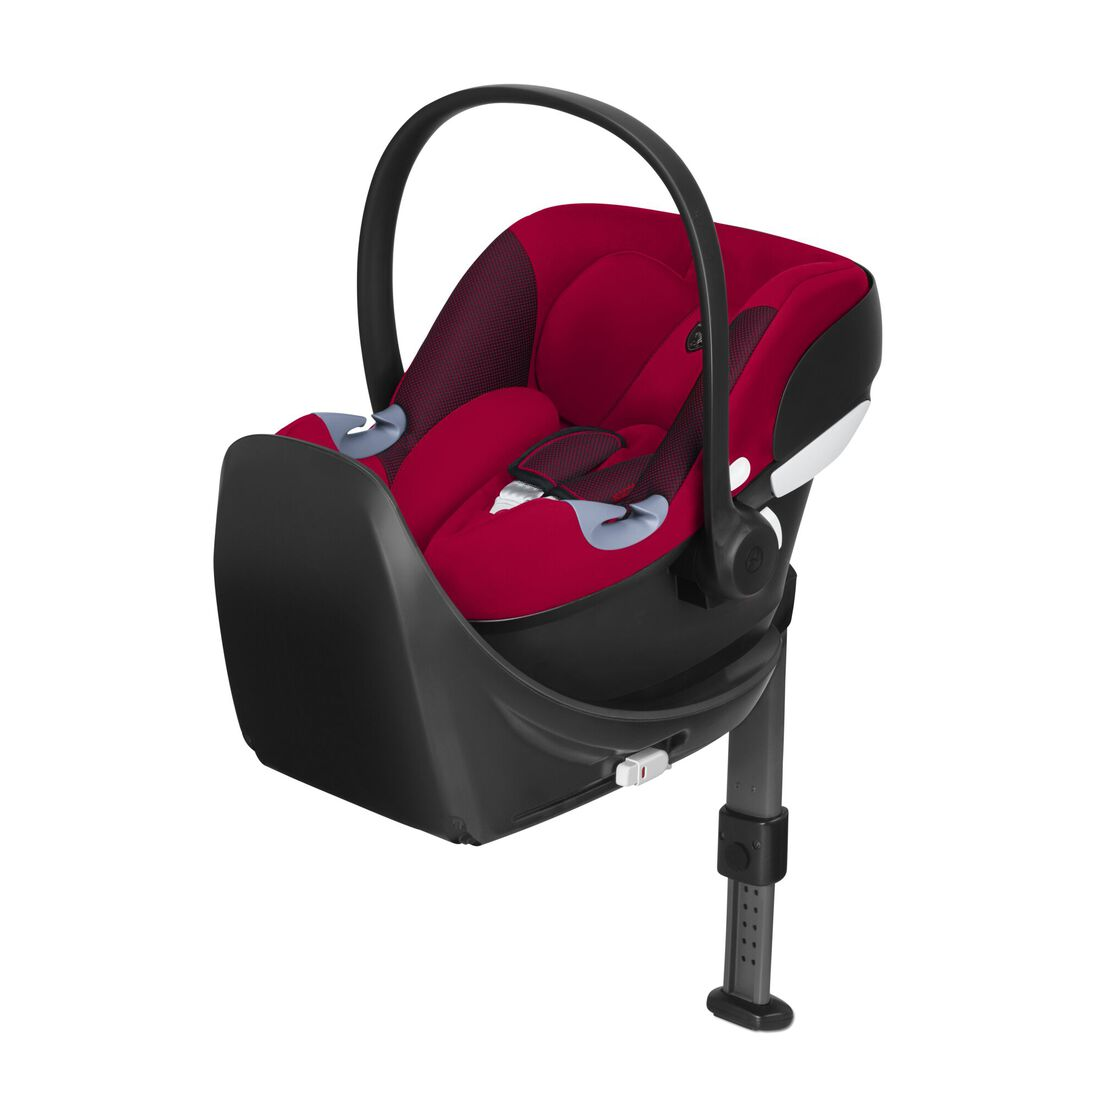 CYBEX Aton M i-Size - Ferrari Racing Red in Ferrari Racing Red large image number 4